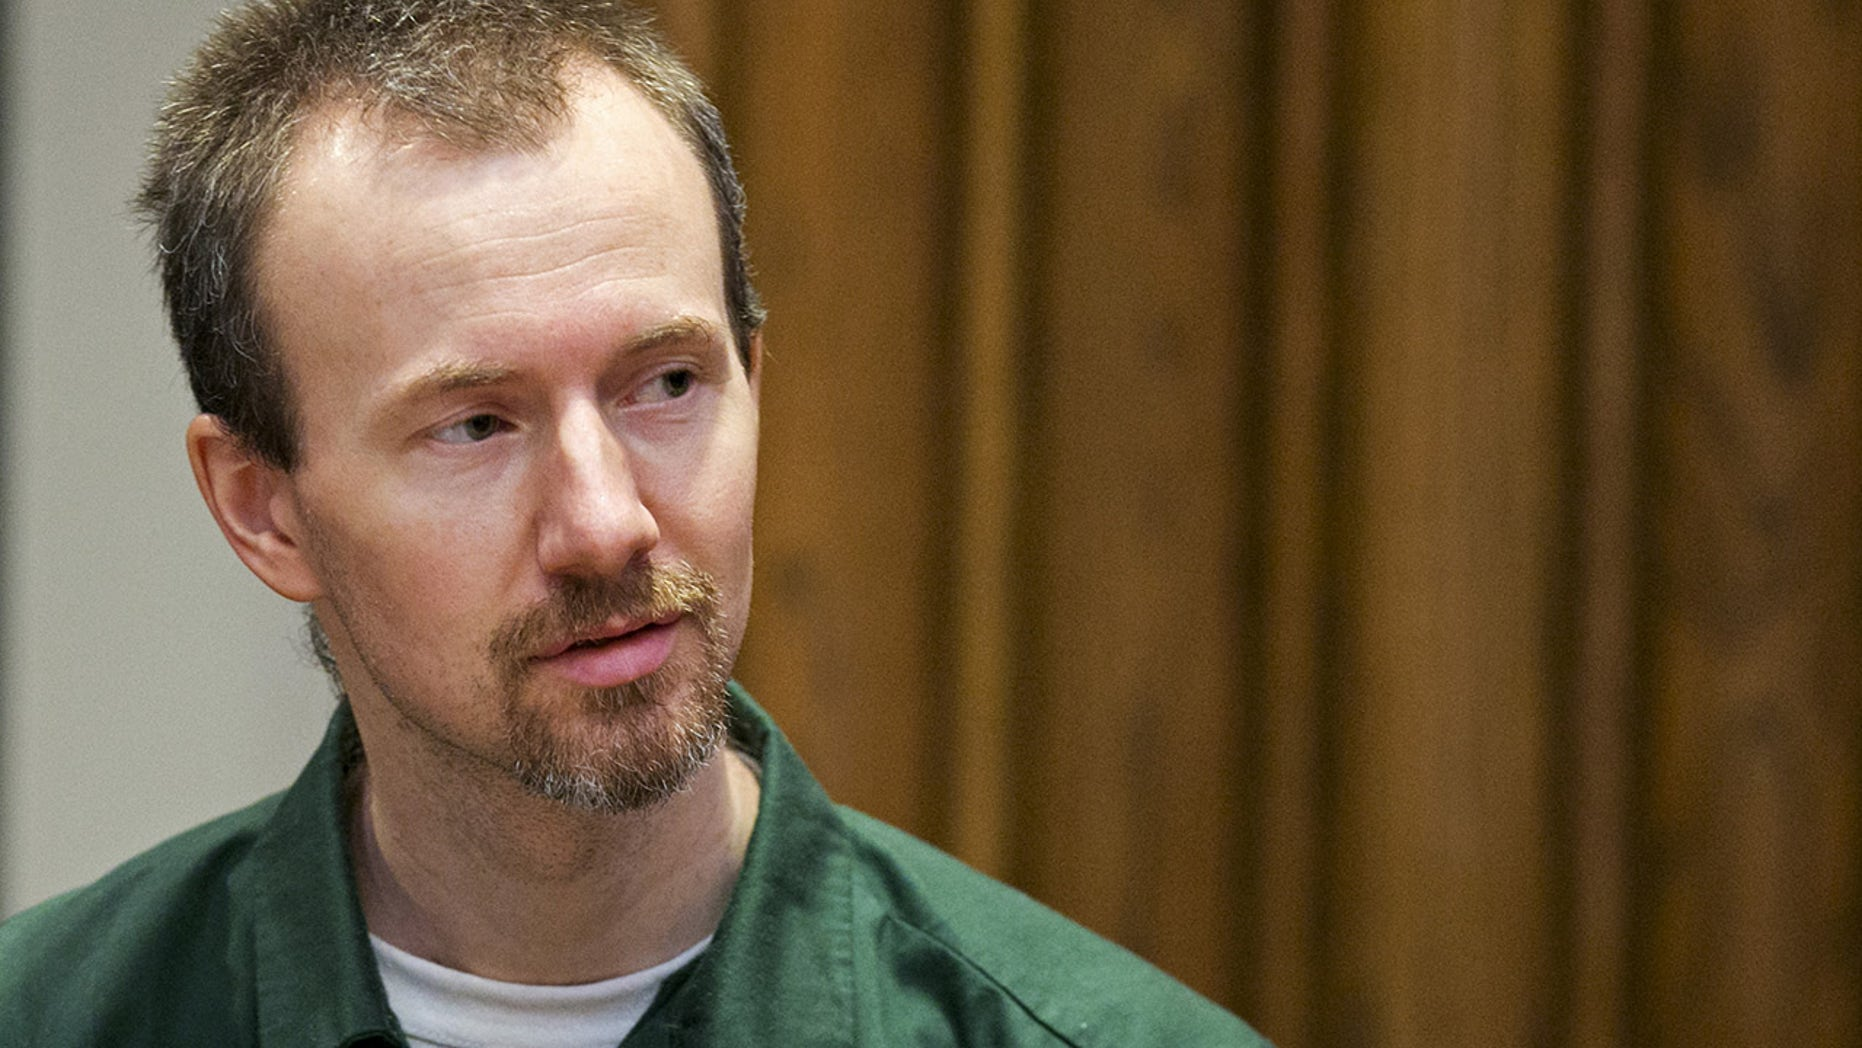 David Sweat, infamous for his 2015 escape from prison, has reportedly found himself in hot water again over an episode of alleged fondling.